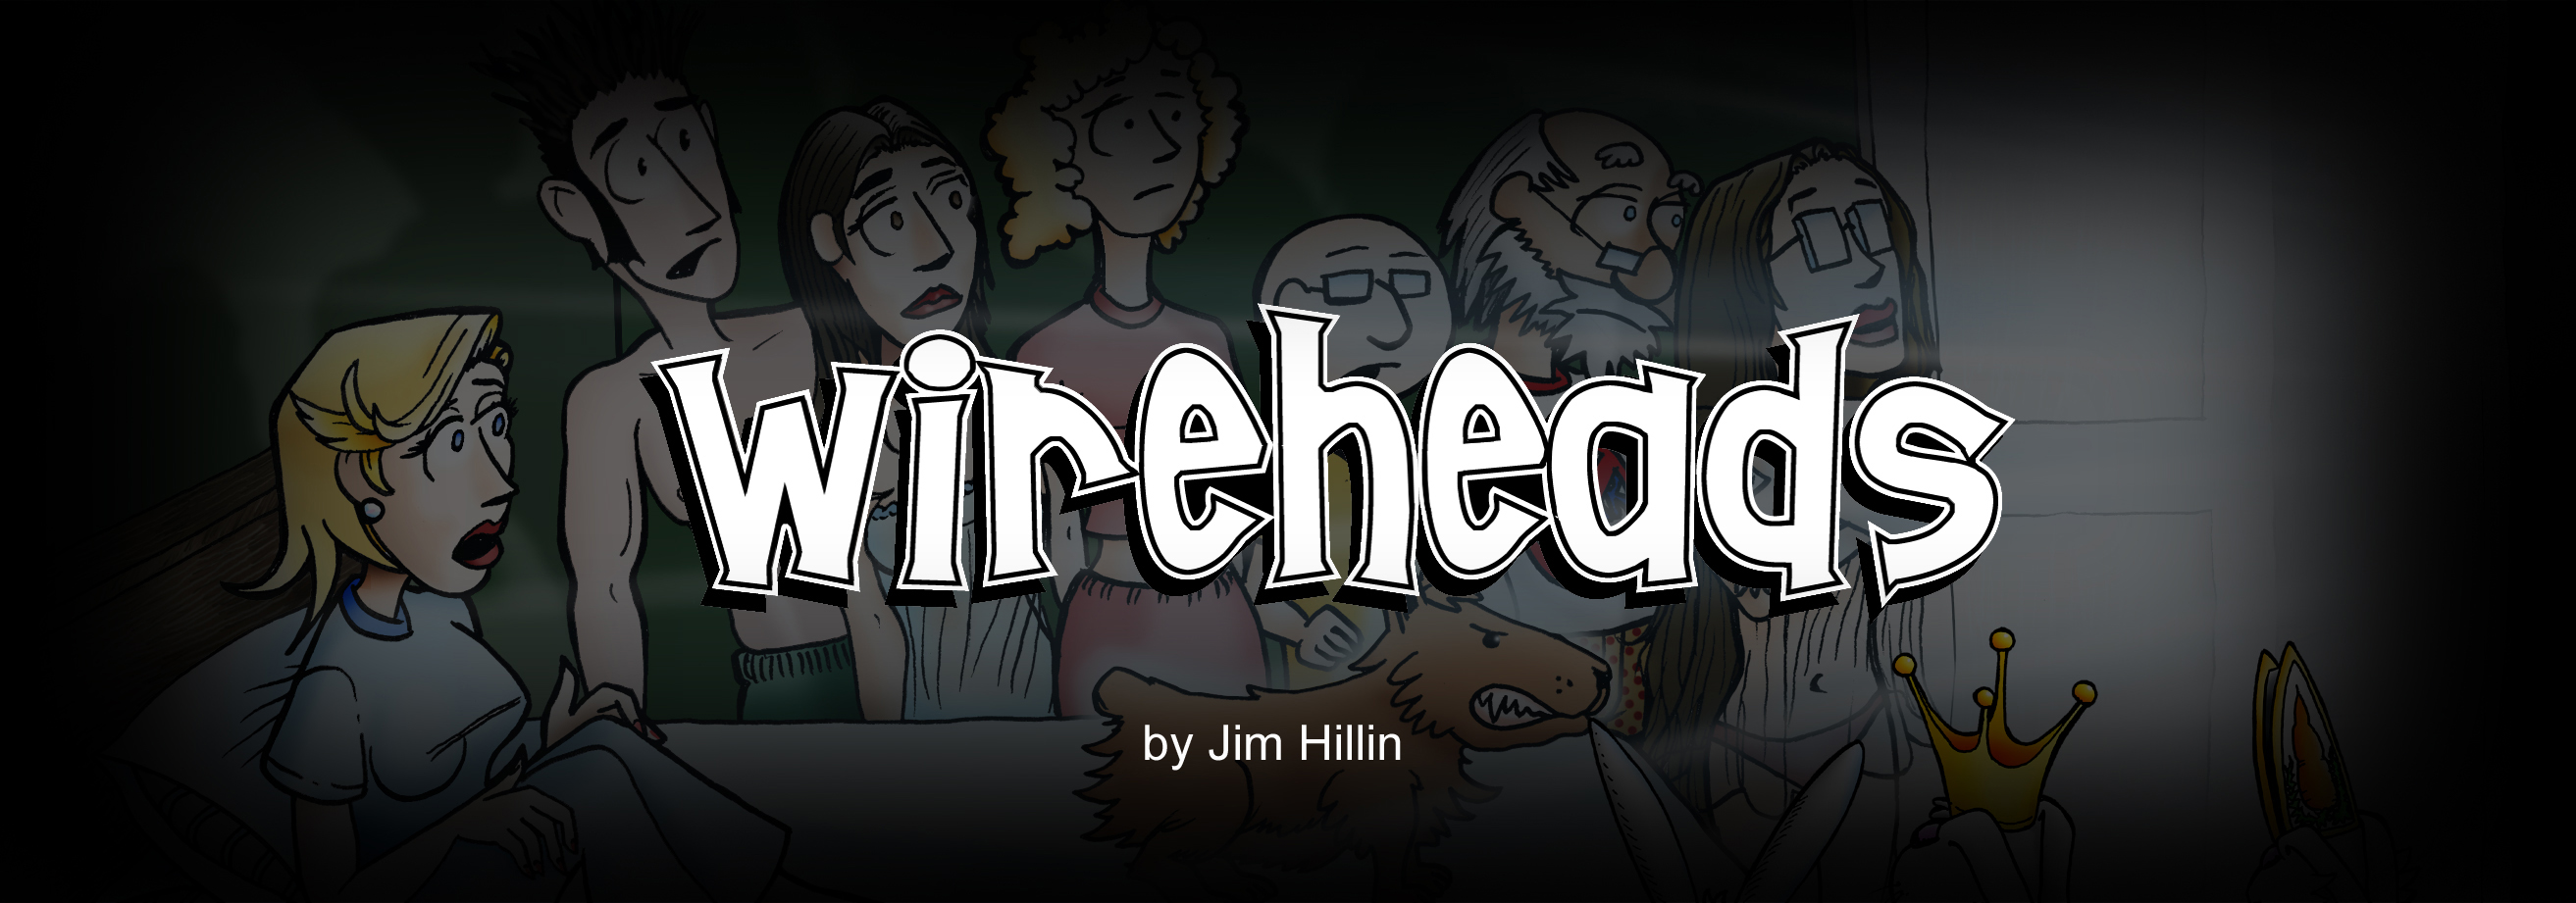 wire-heads' logo